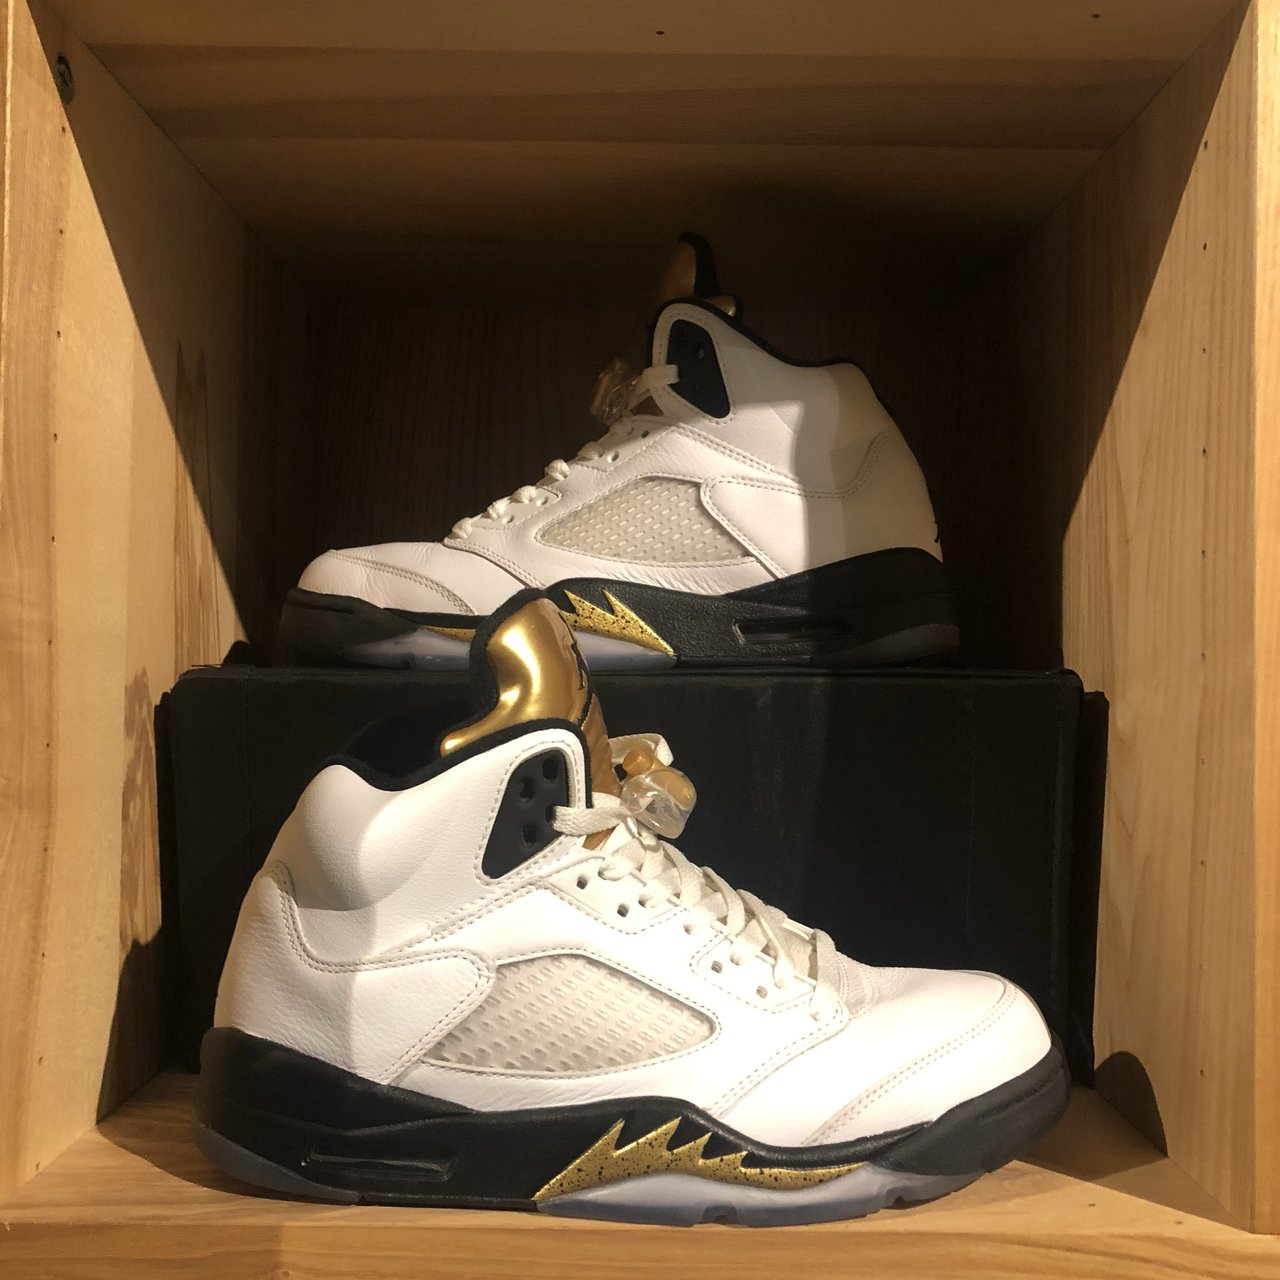 9008484e2e56f3 Jordan 5  Olympic Metallic Gold  👟Size men s uk6.5